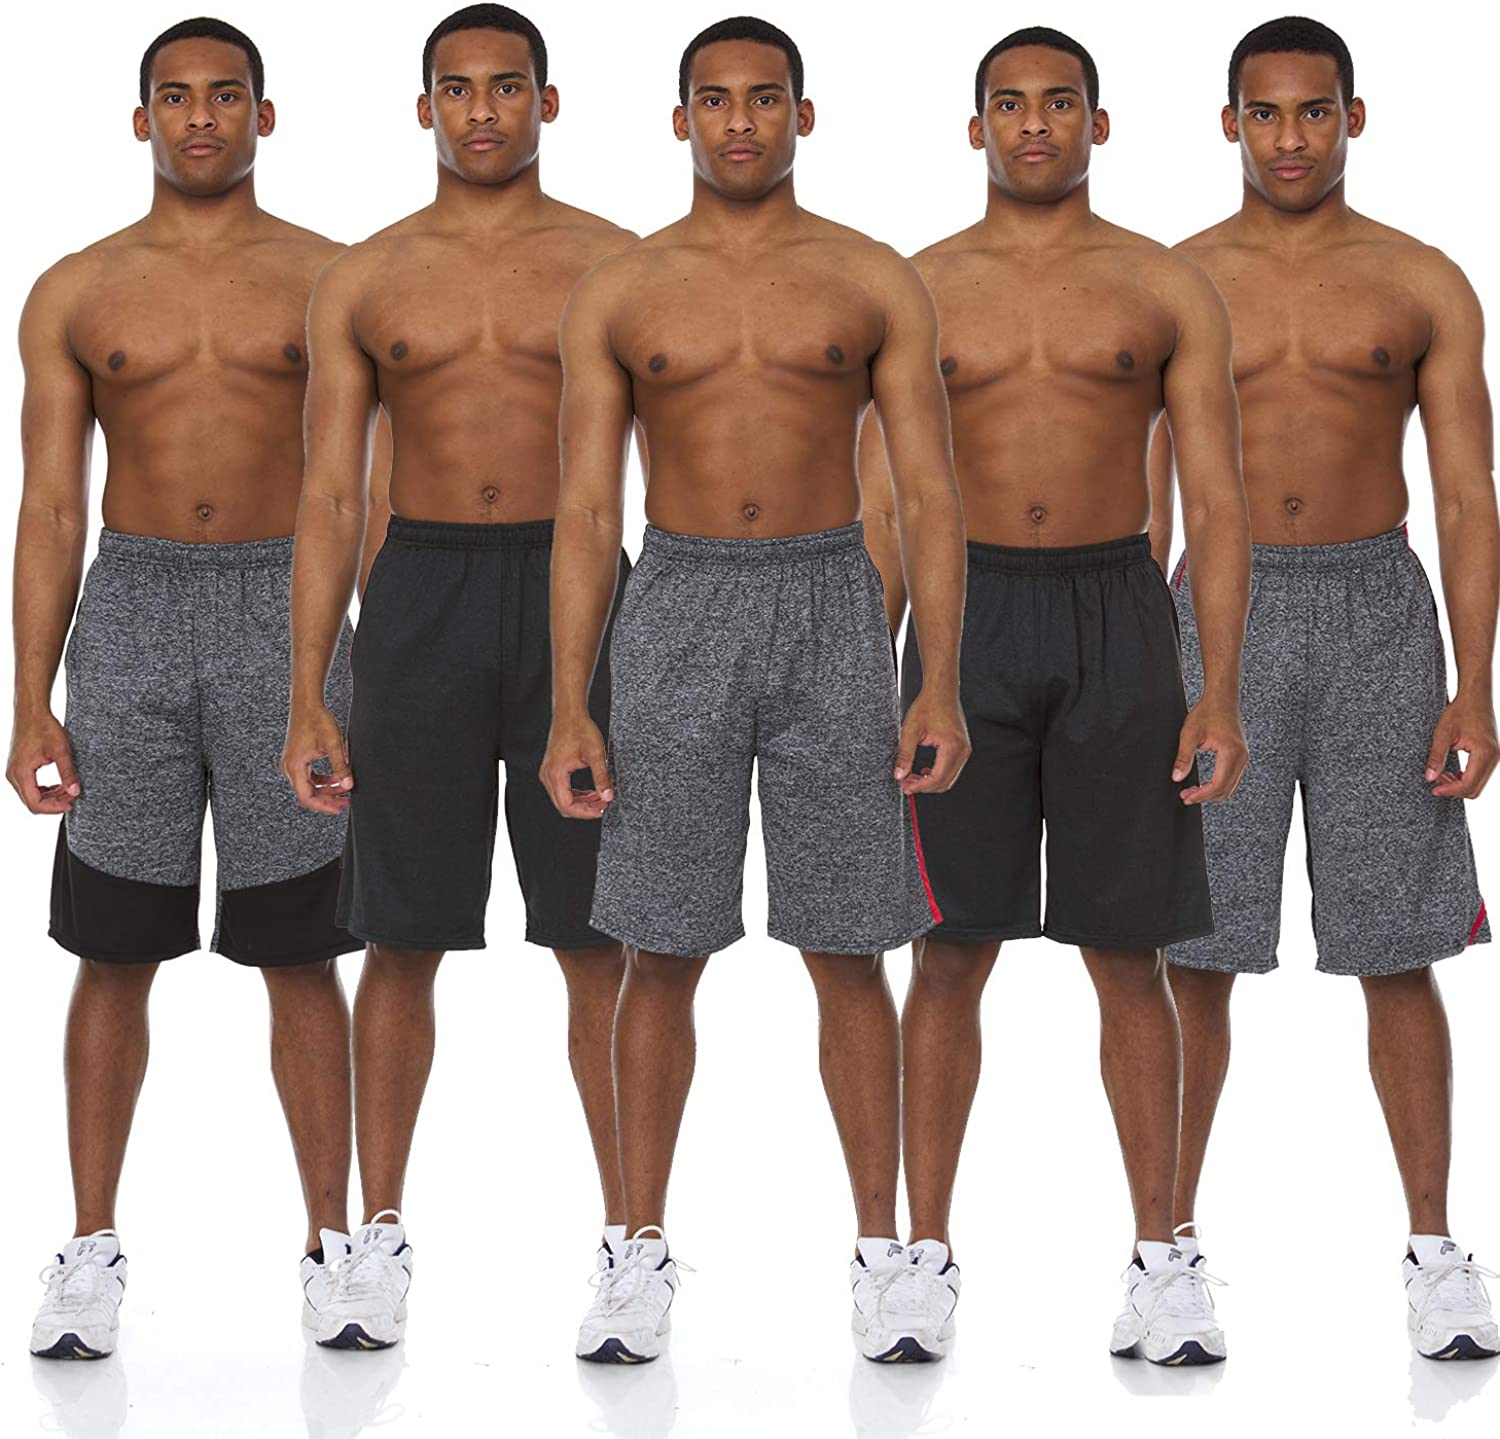 5 Pack: Men's Active Performance Athletic Basketball Gym Knit Shorts with Pockets